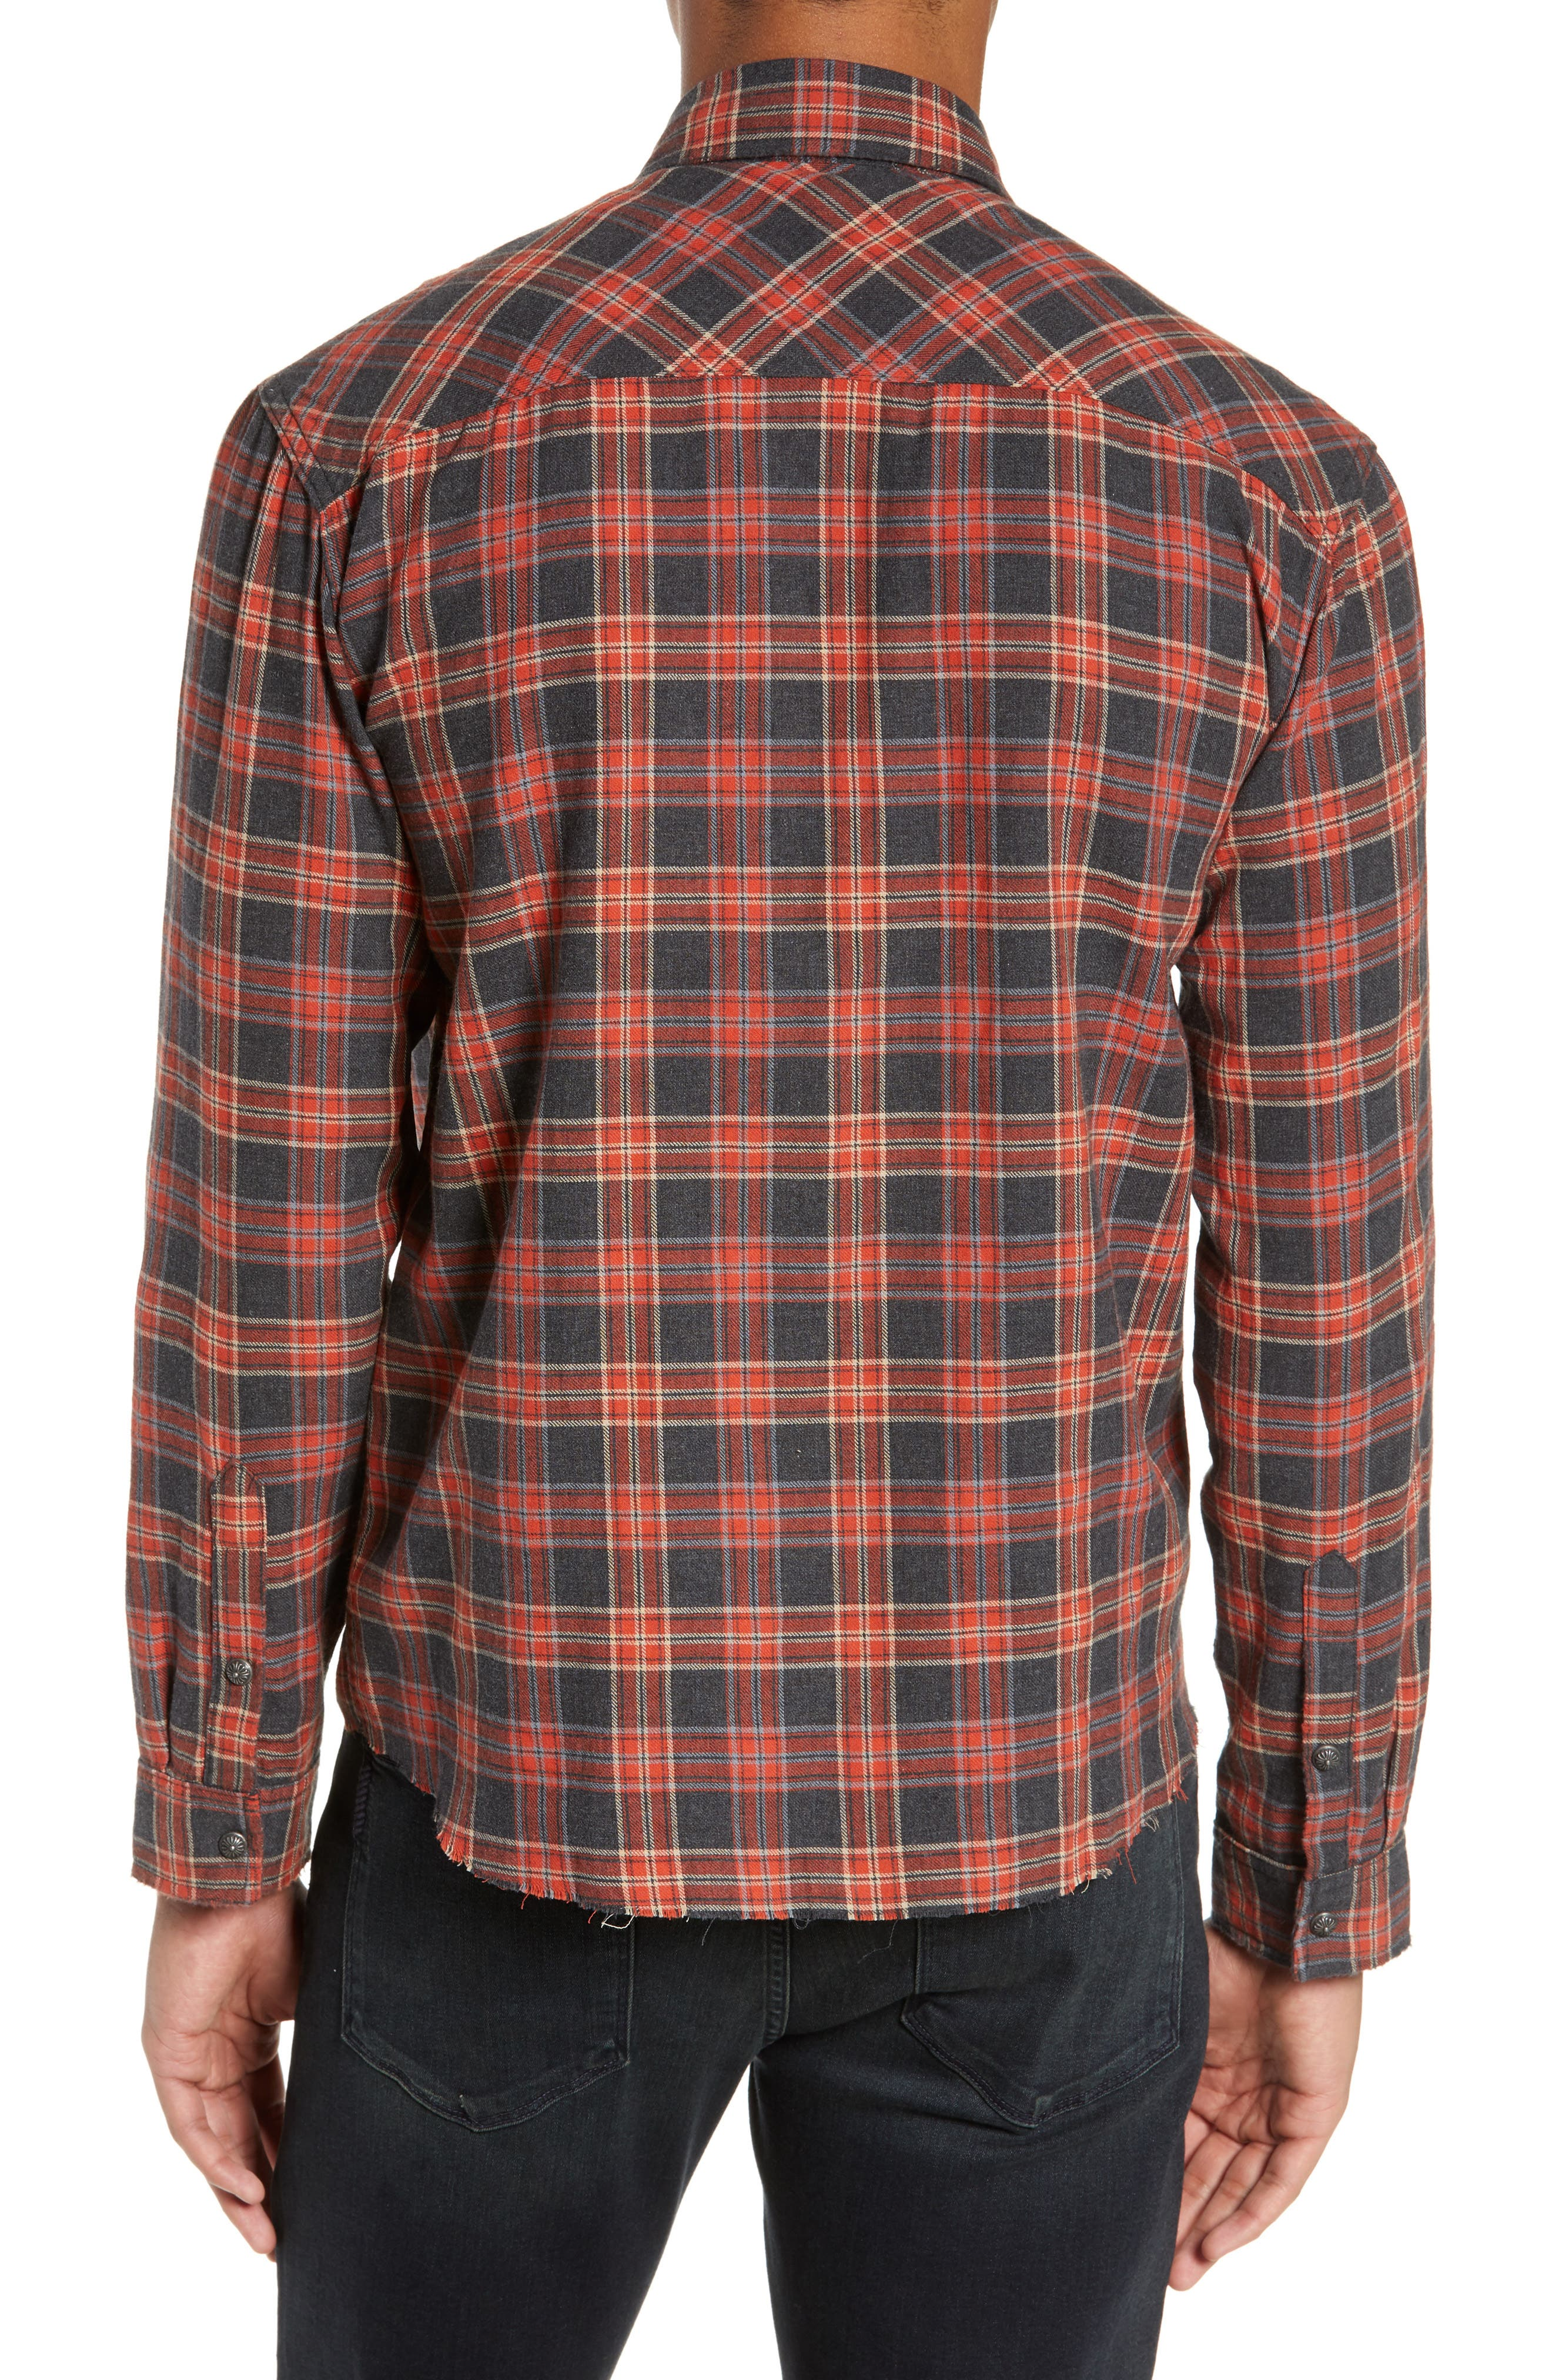 THE KOOPLES, Plaid Regular Fit Flannel Shirt, Alternate thumbnail 3, color, 800